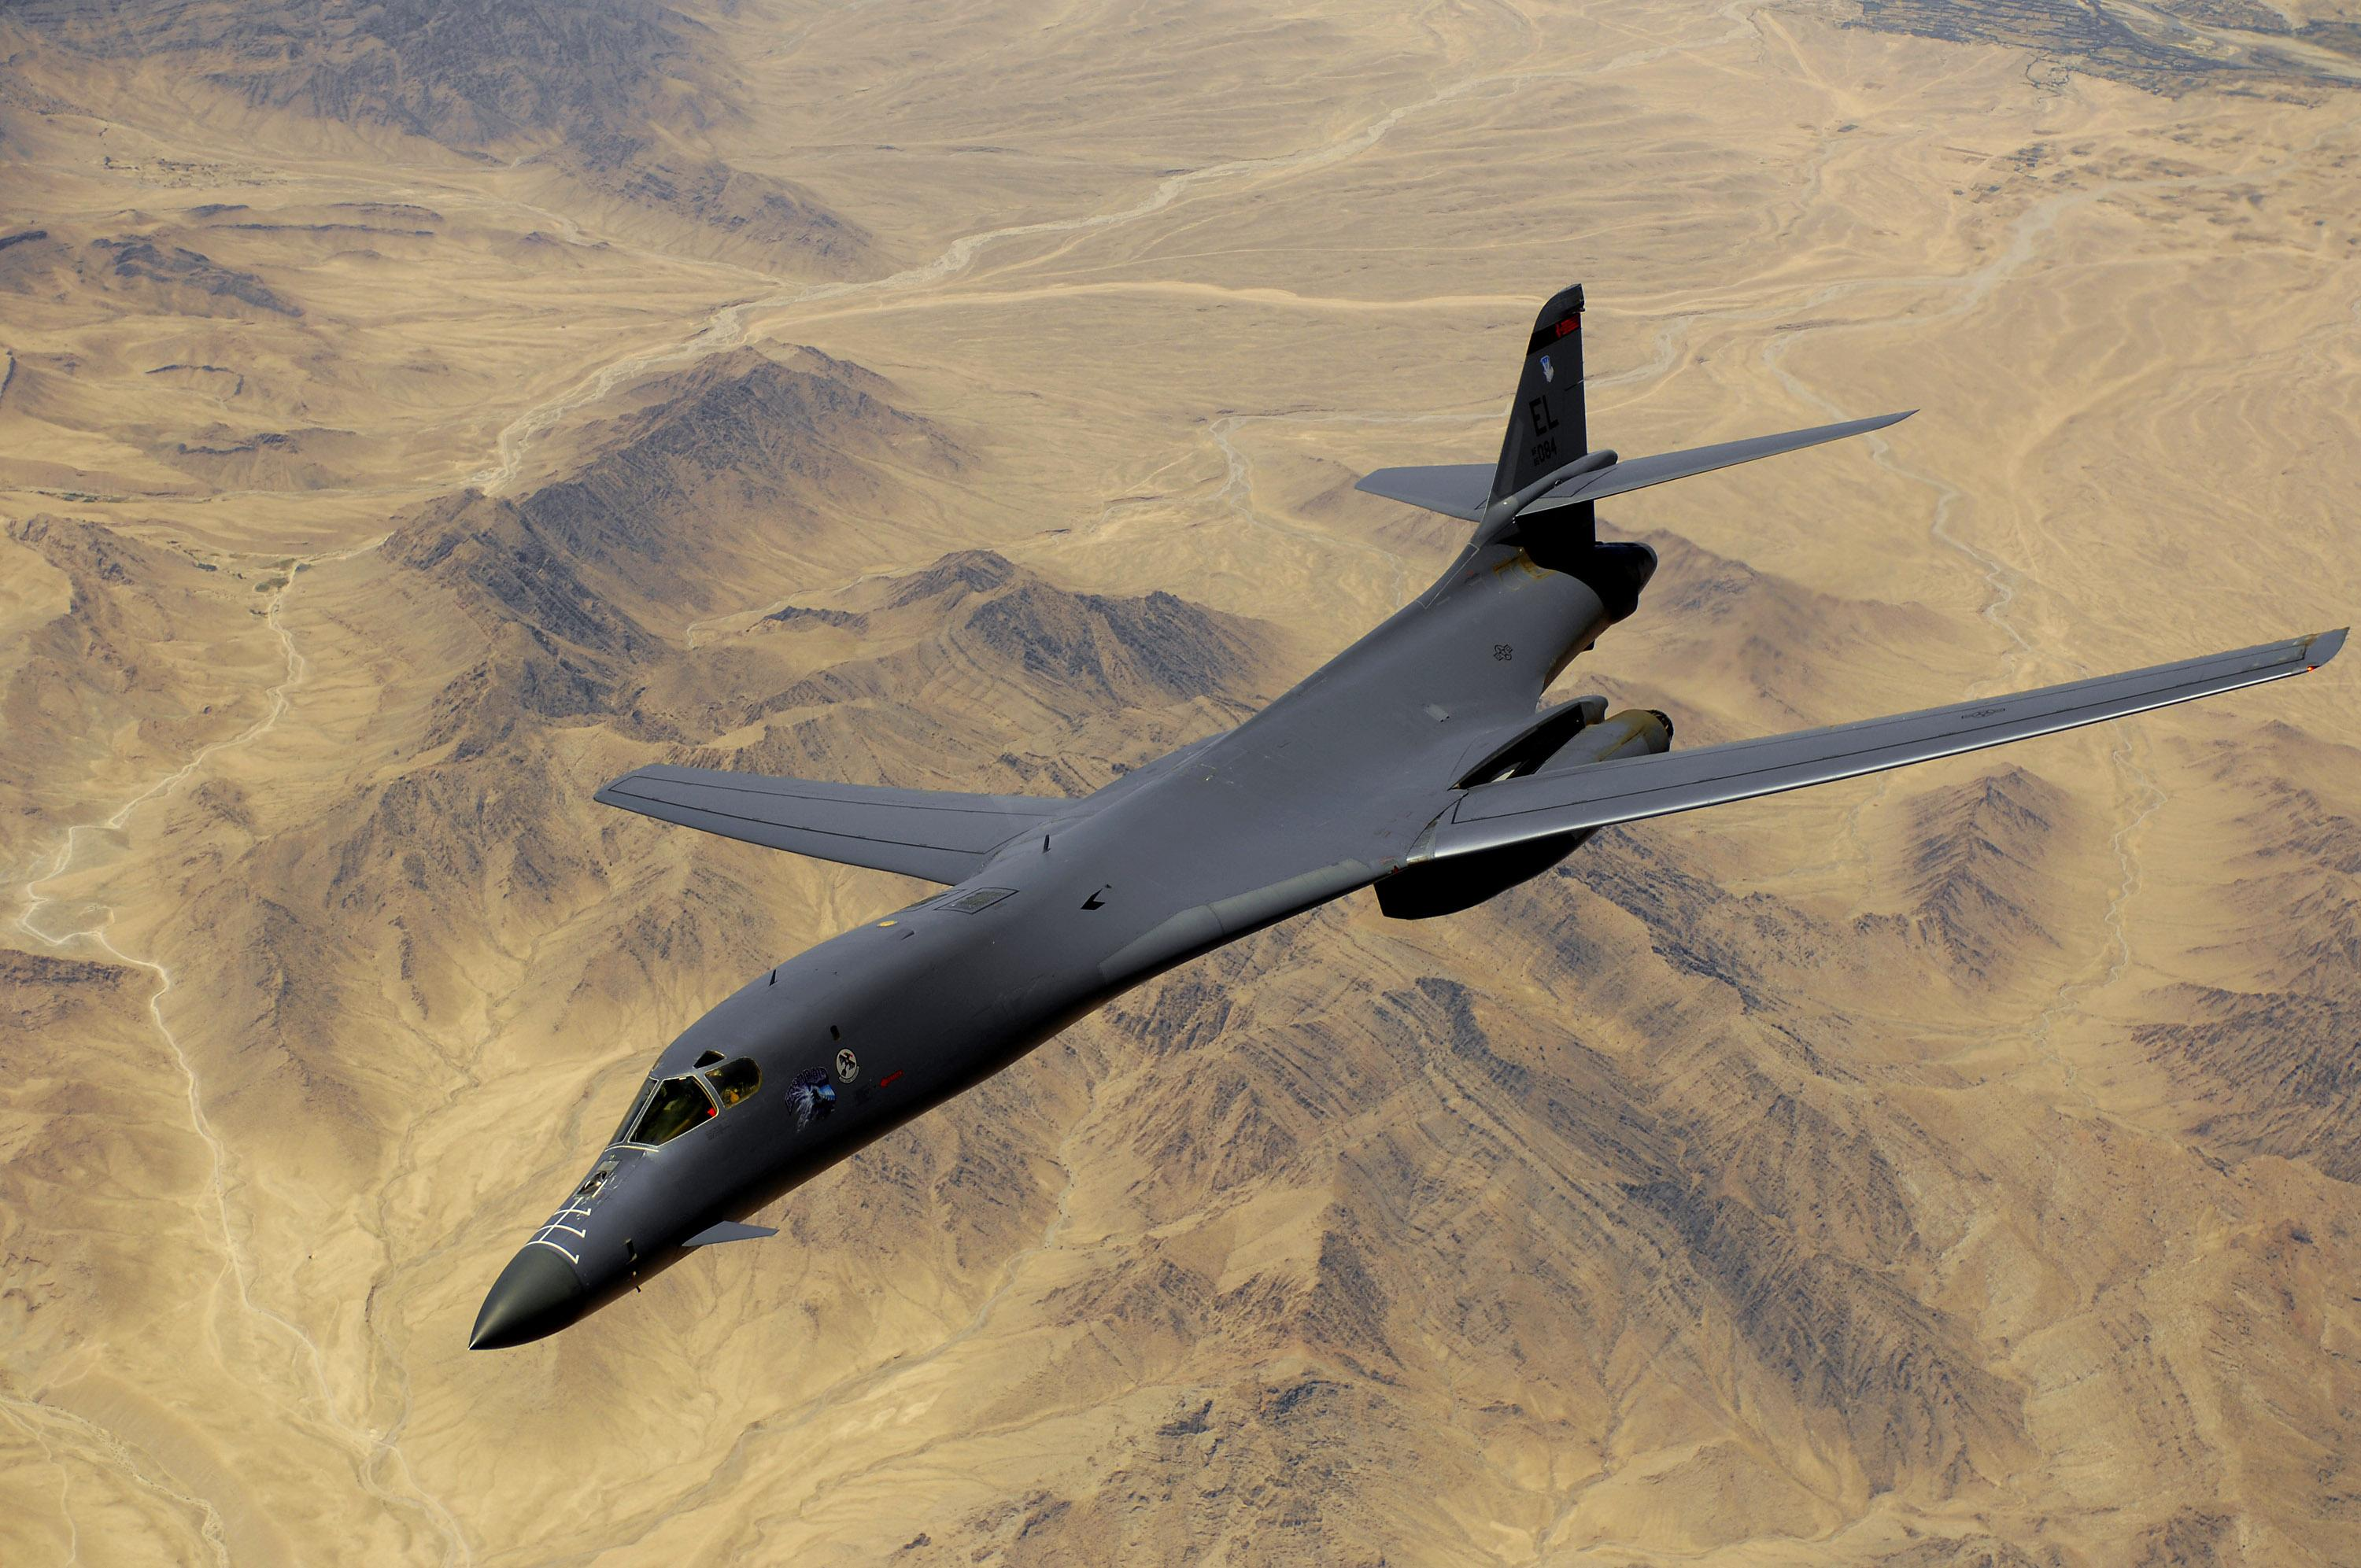 U.S. withdraws from Syria and Iraq its major strategic bombers